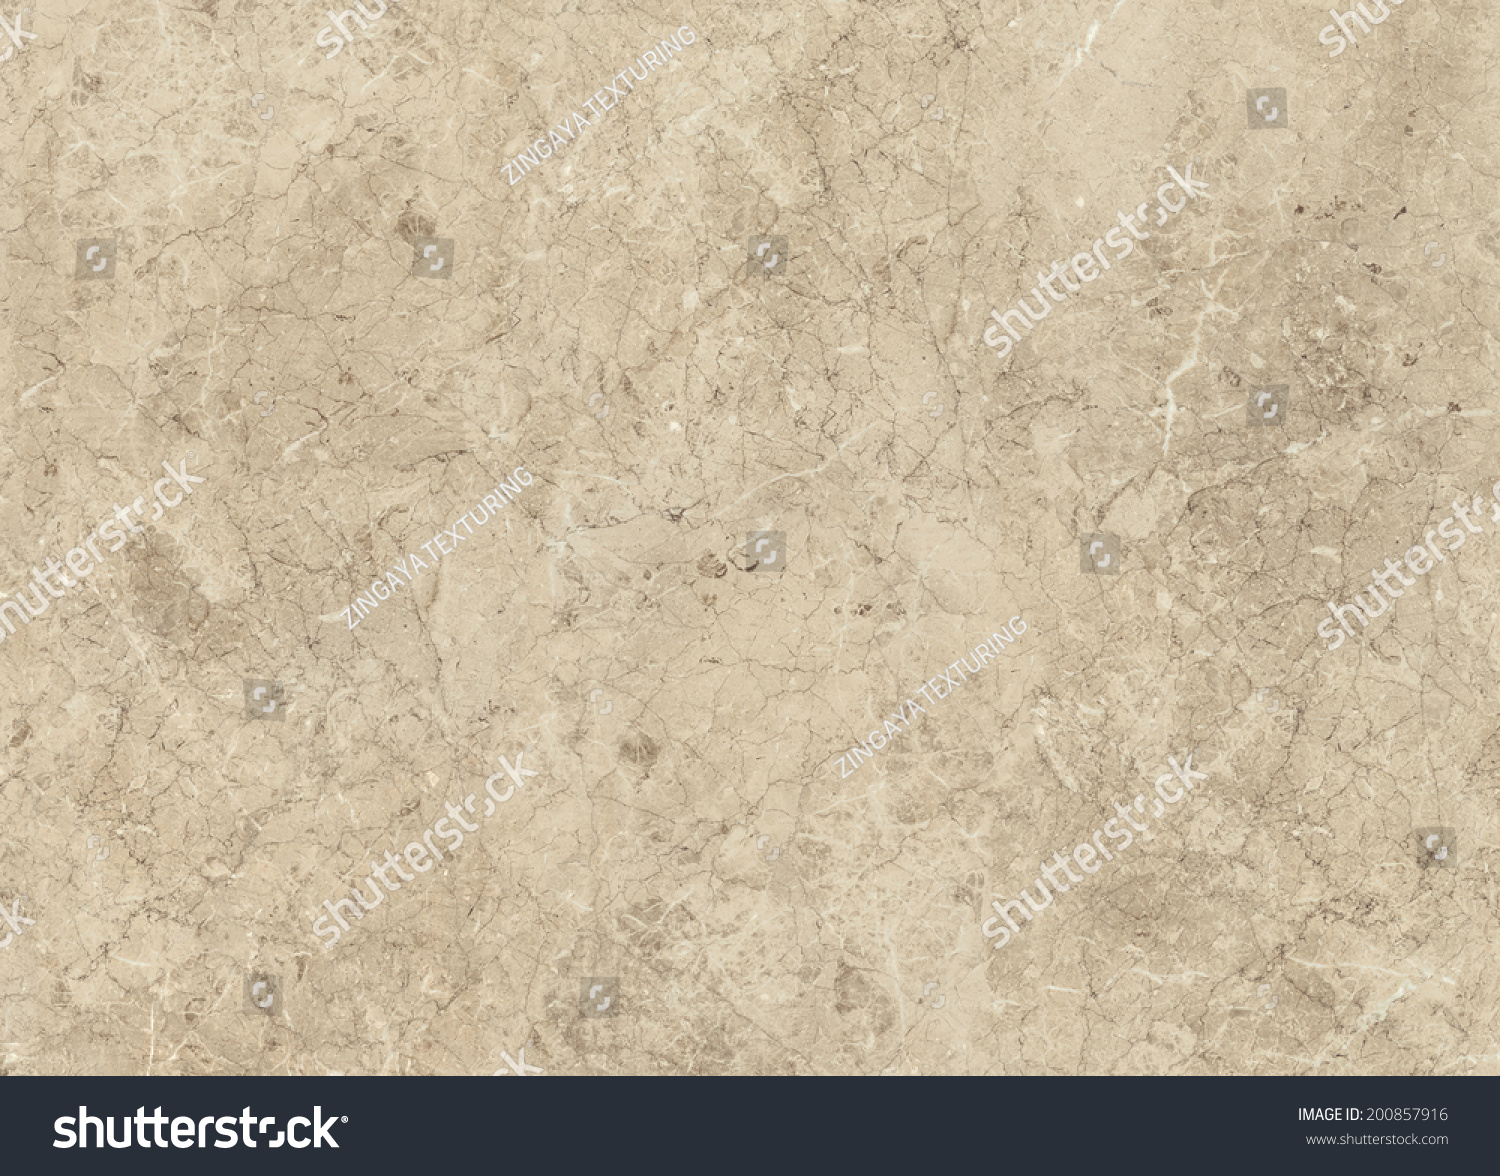 cafe tumbled travertine marble texture stone stock photo 200857916